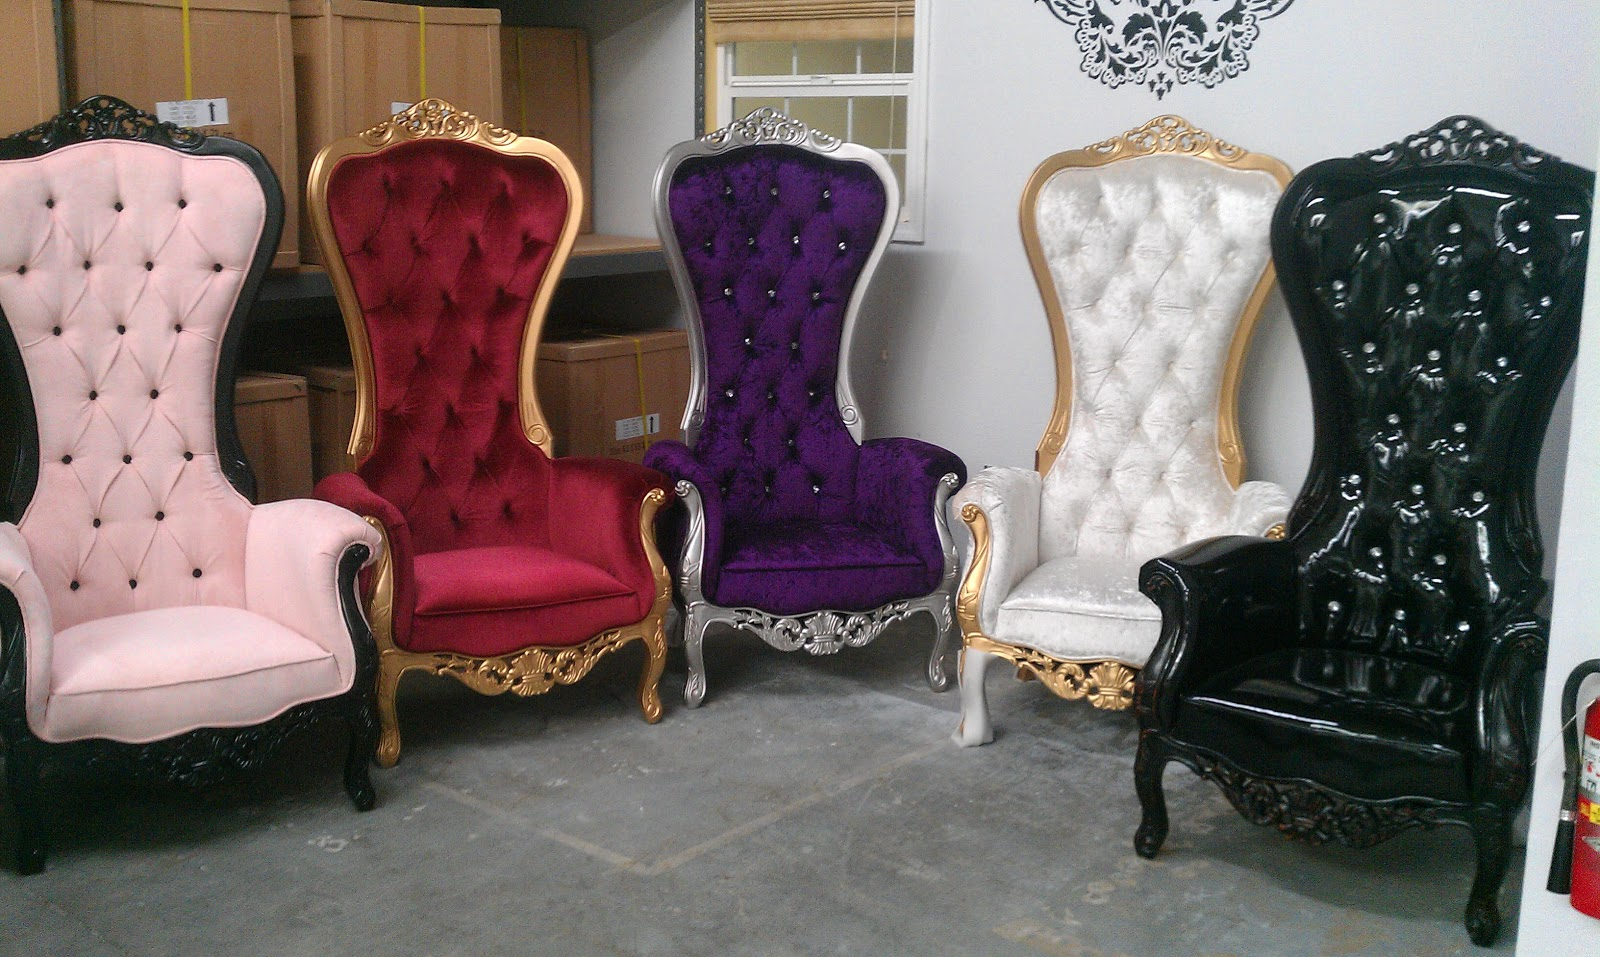 Black King Throne Chair Modern chair rental Images - Frompo